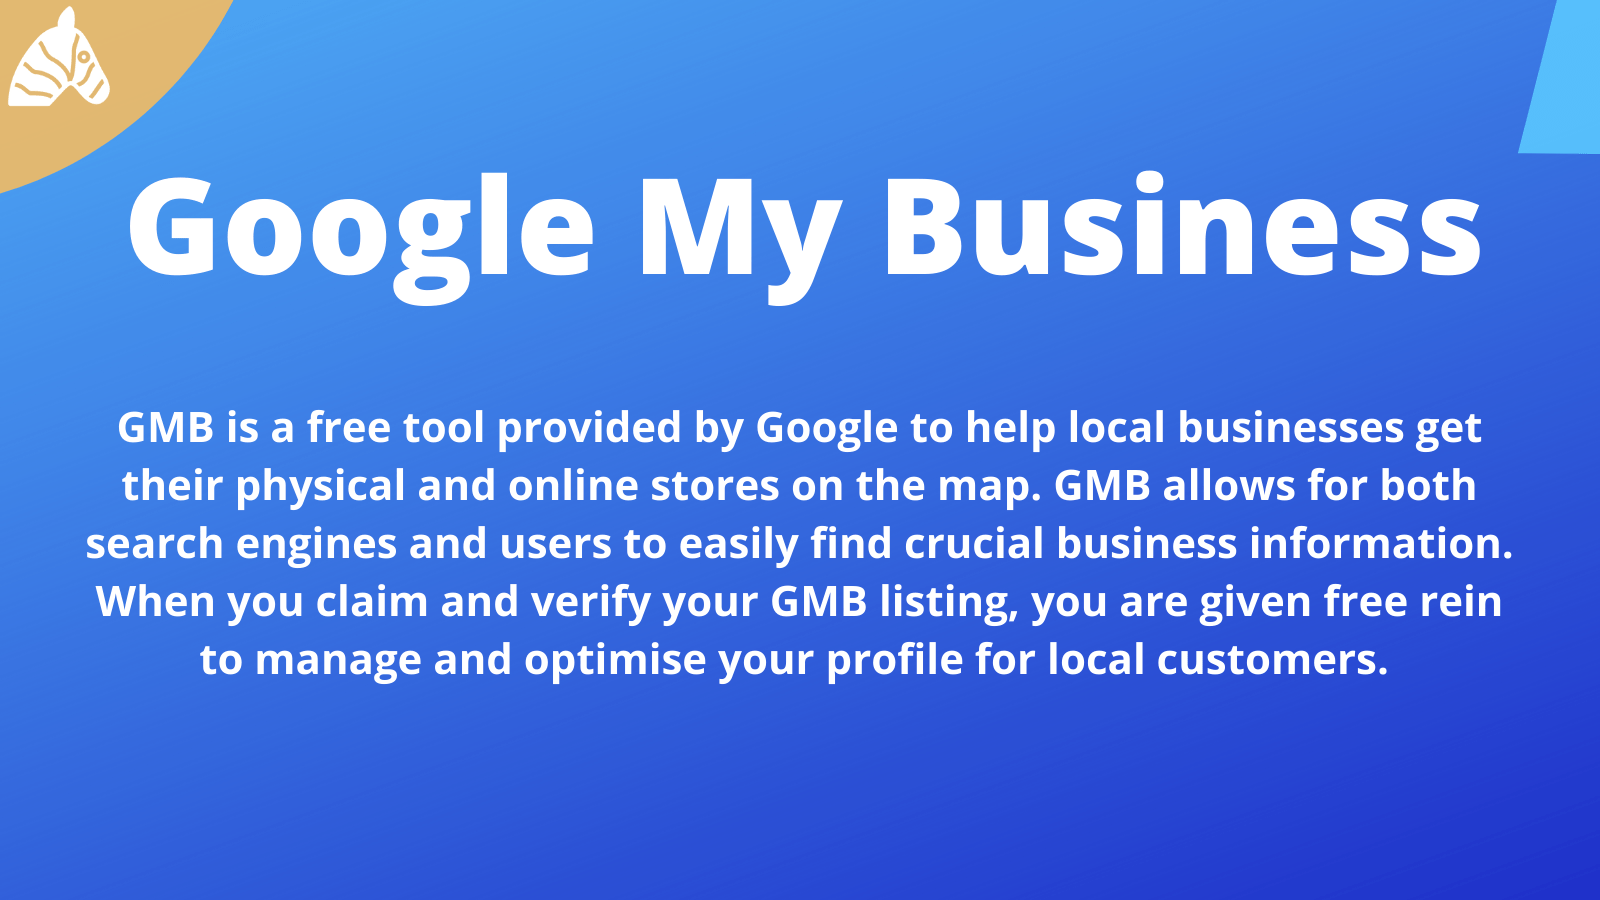 information about Google my business and how it impacts SEO